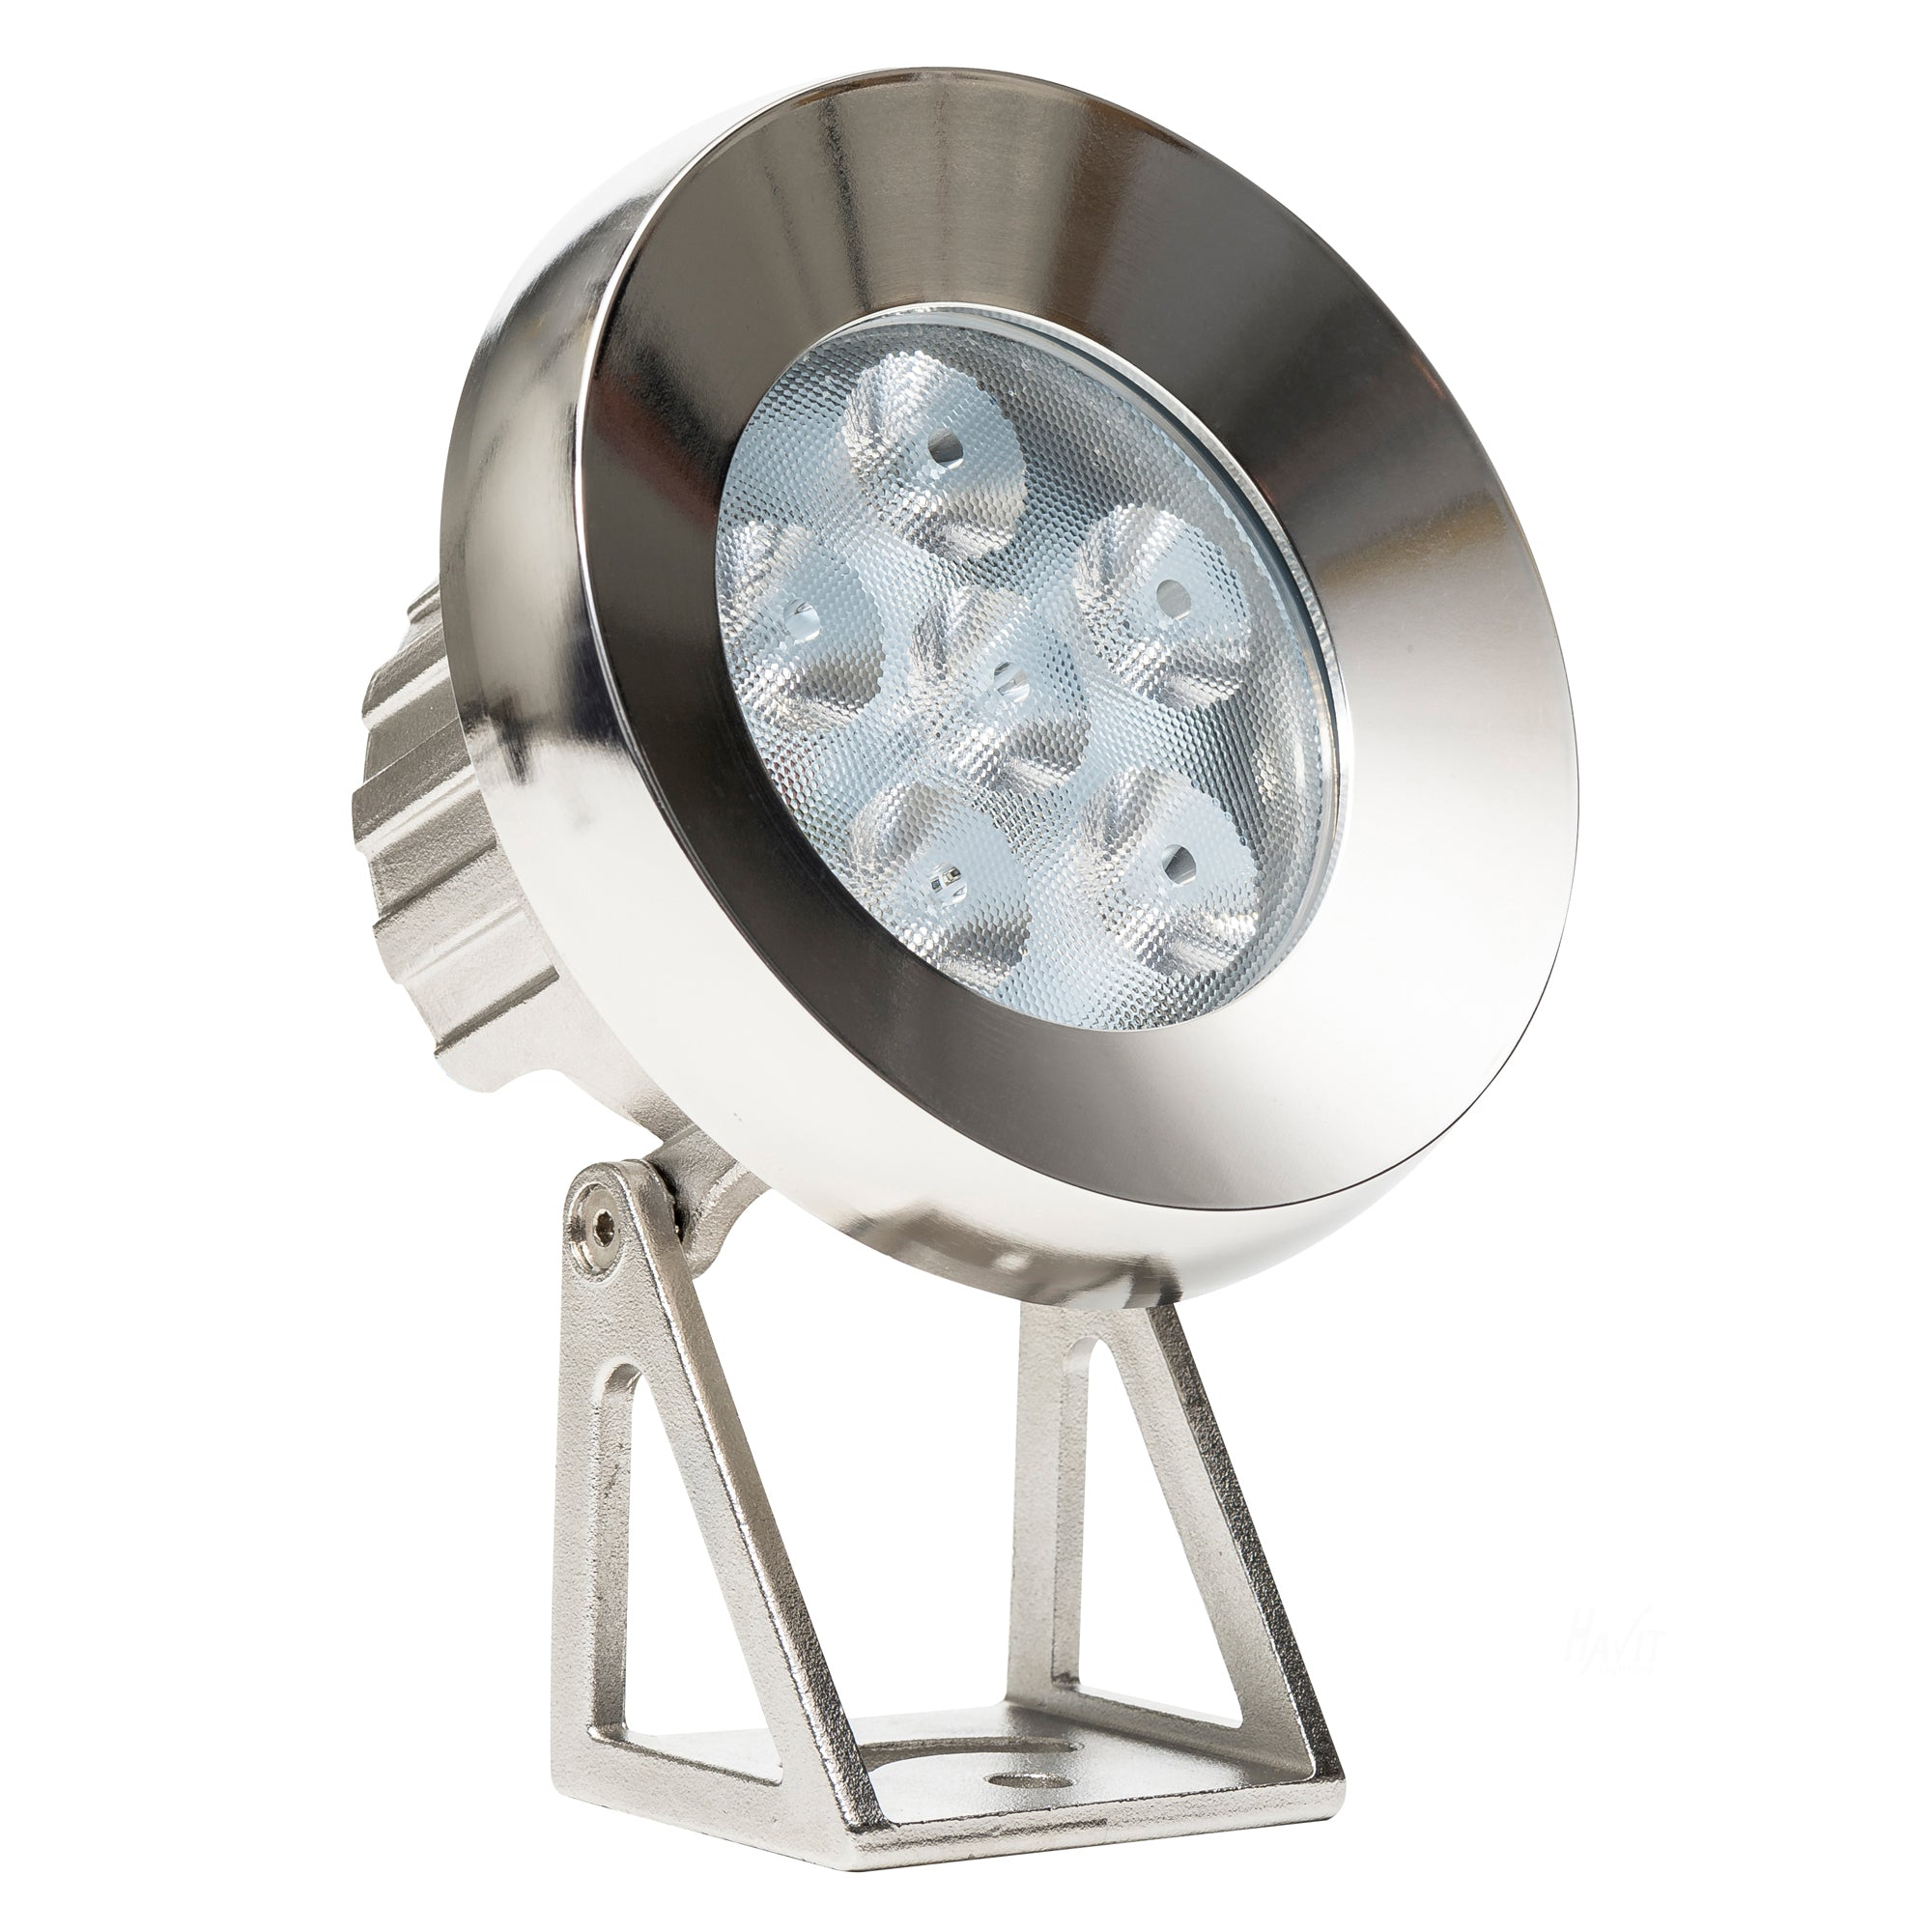 HV1494 - Sotto 316 Stainless Steel 15w LED Pond or Garden Light